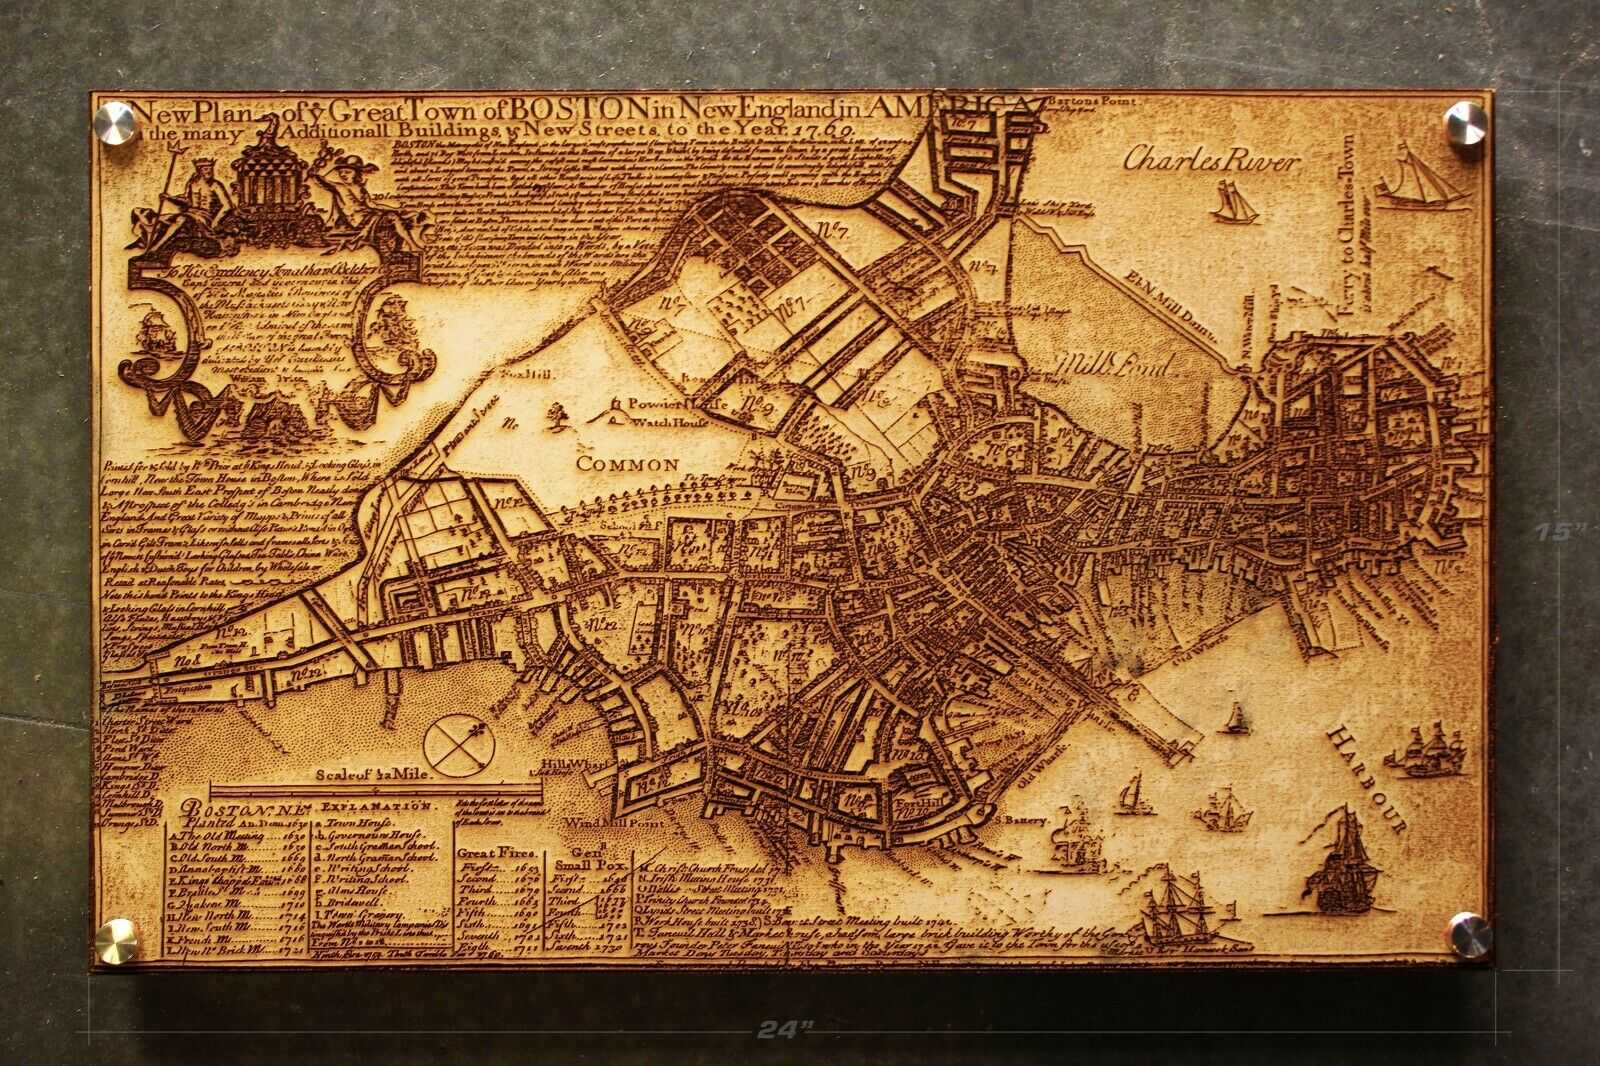 Laser Engraved Vintage 1796 Boston Map Etched Wood City Street New England MASS